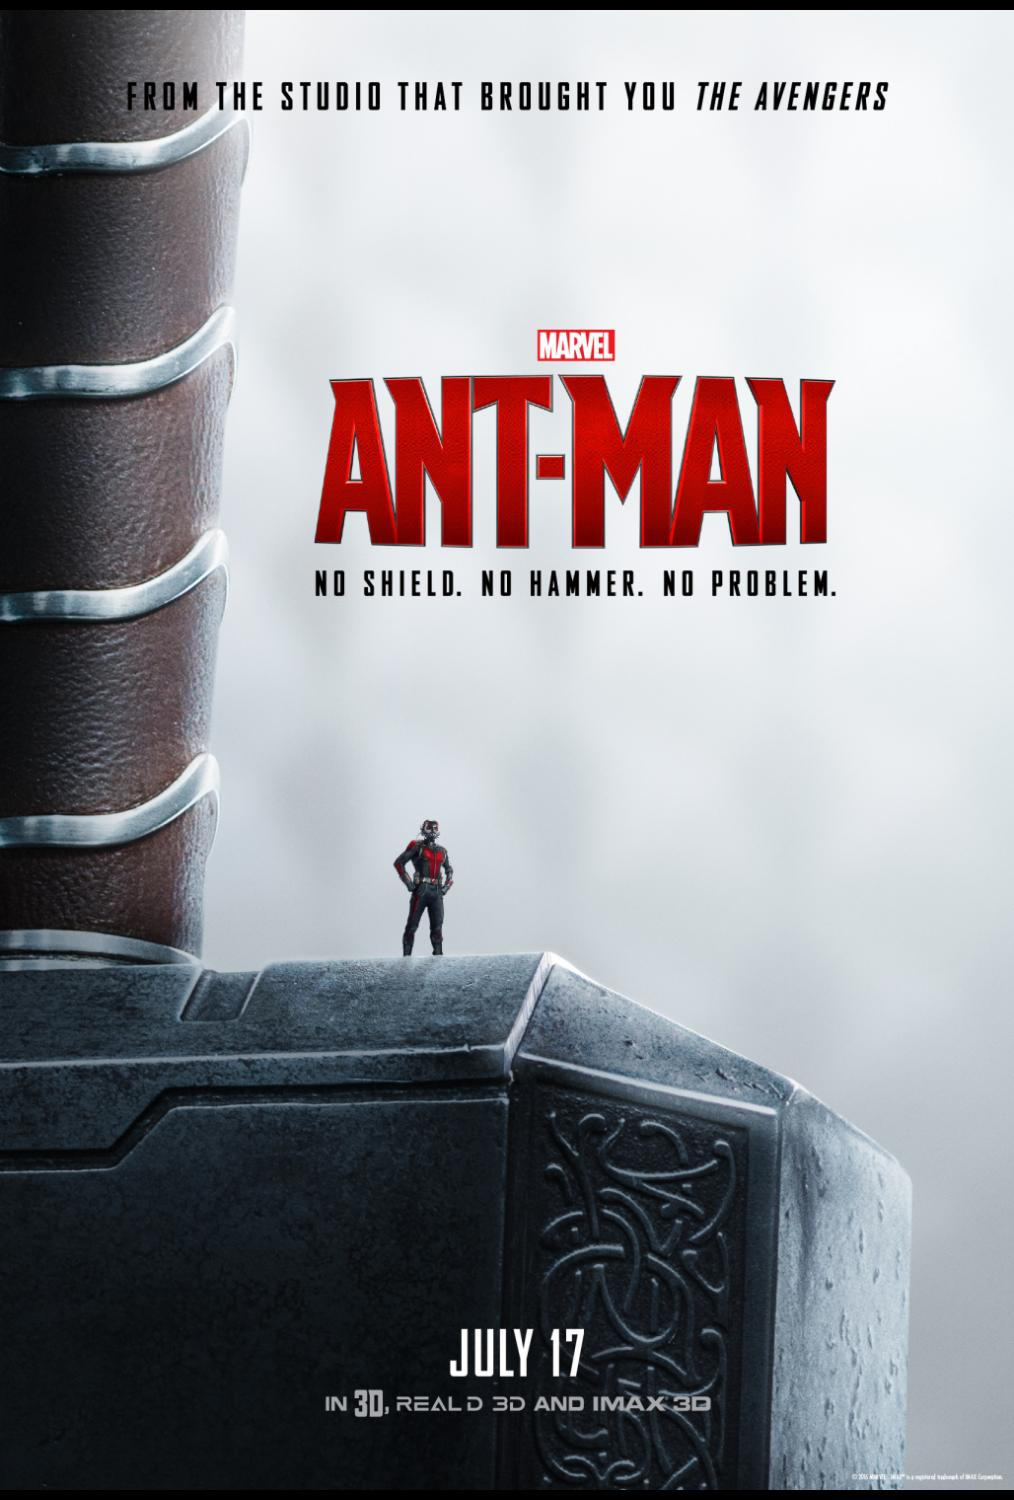 Marvel's Ant Man in Theaters 7/17 #AntMan